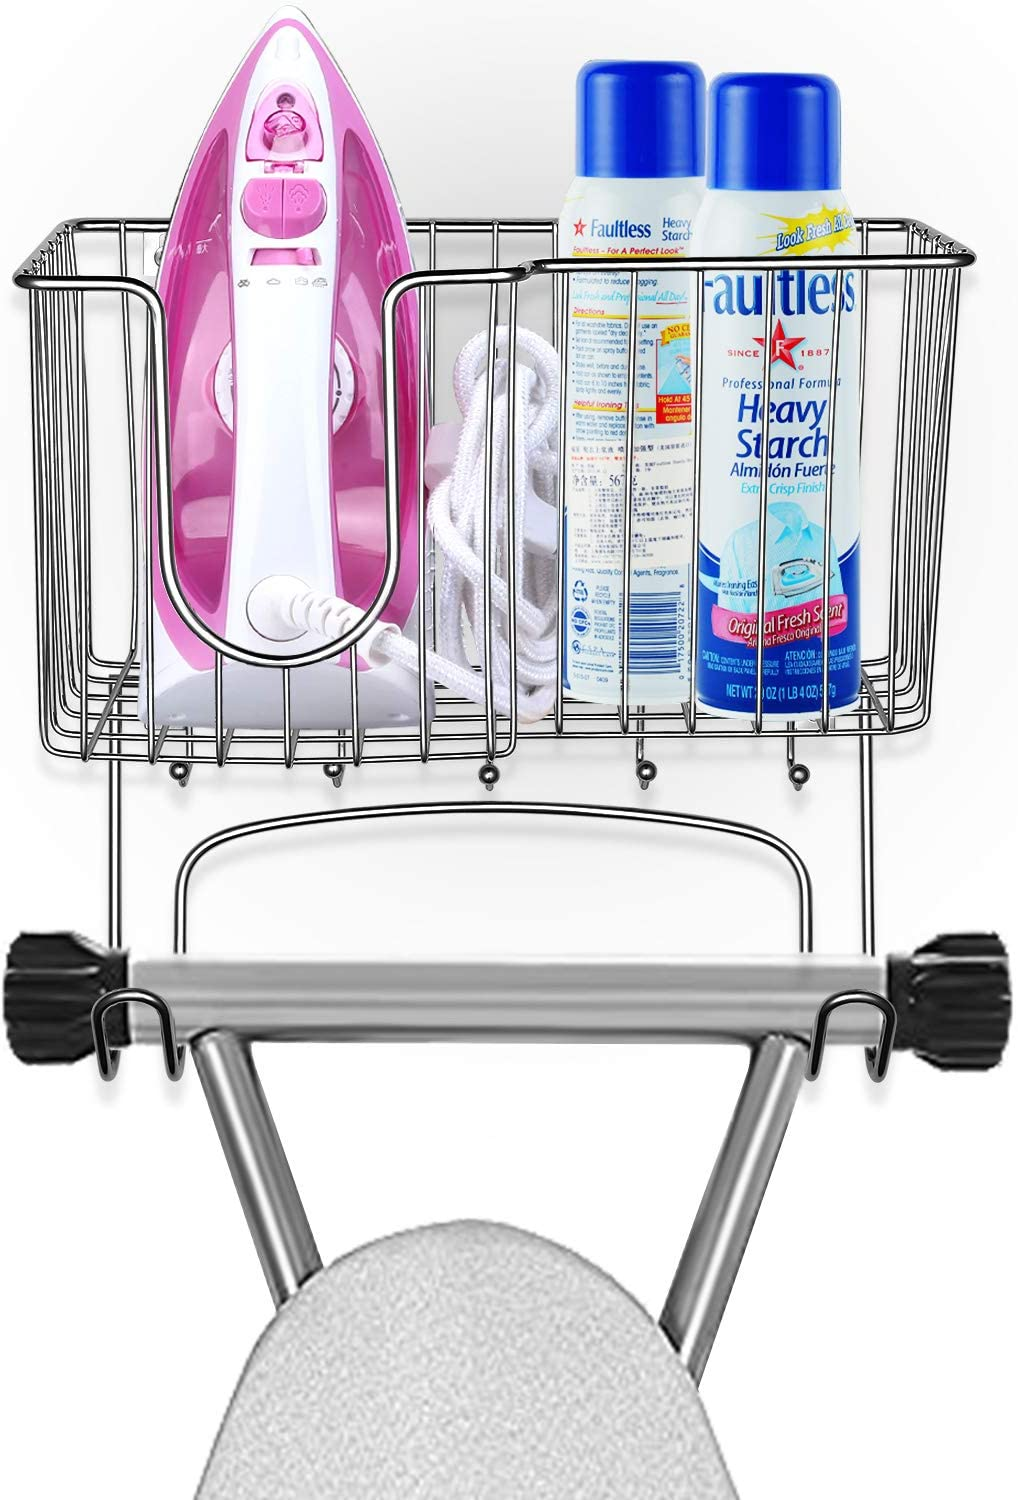 SPACEREST Metal Ironing Board Holder Wall Mounted Ironing Board Hanger with Large Storage Basket & 5 Hanging Hooks for Laundry Rooms-Iron, Board, Spray Bottles Rack- Chrome